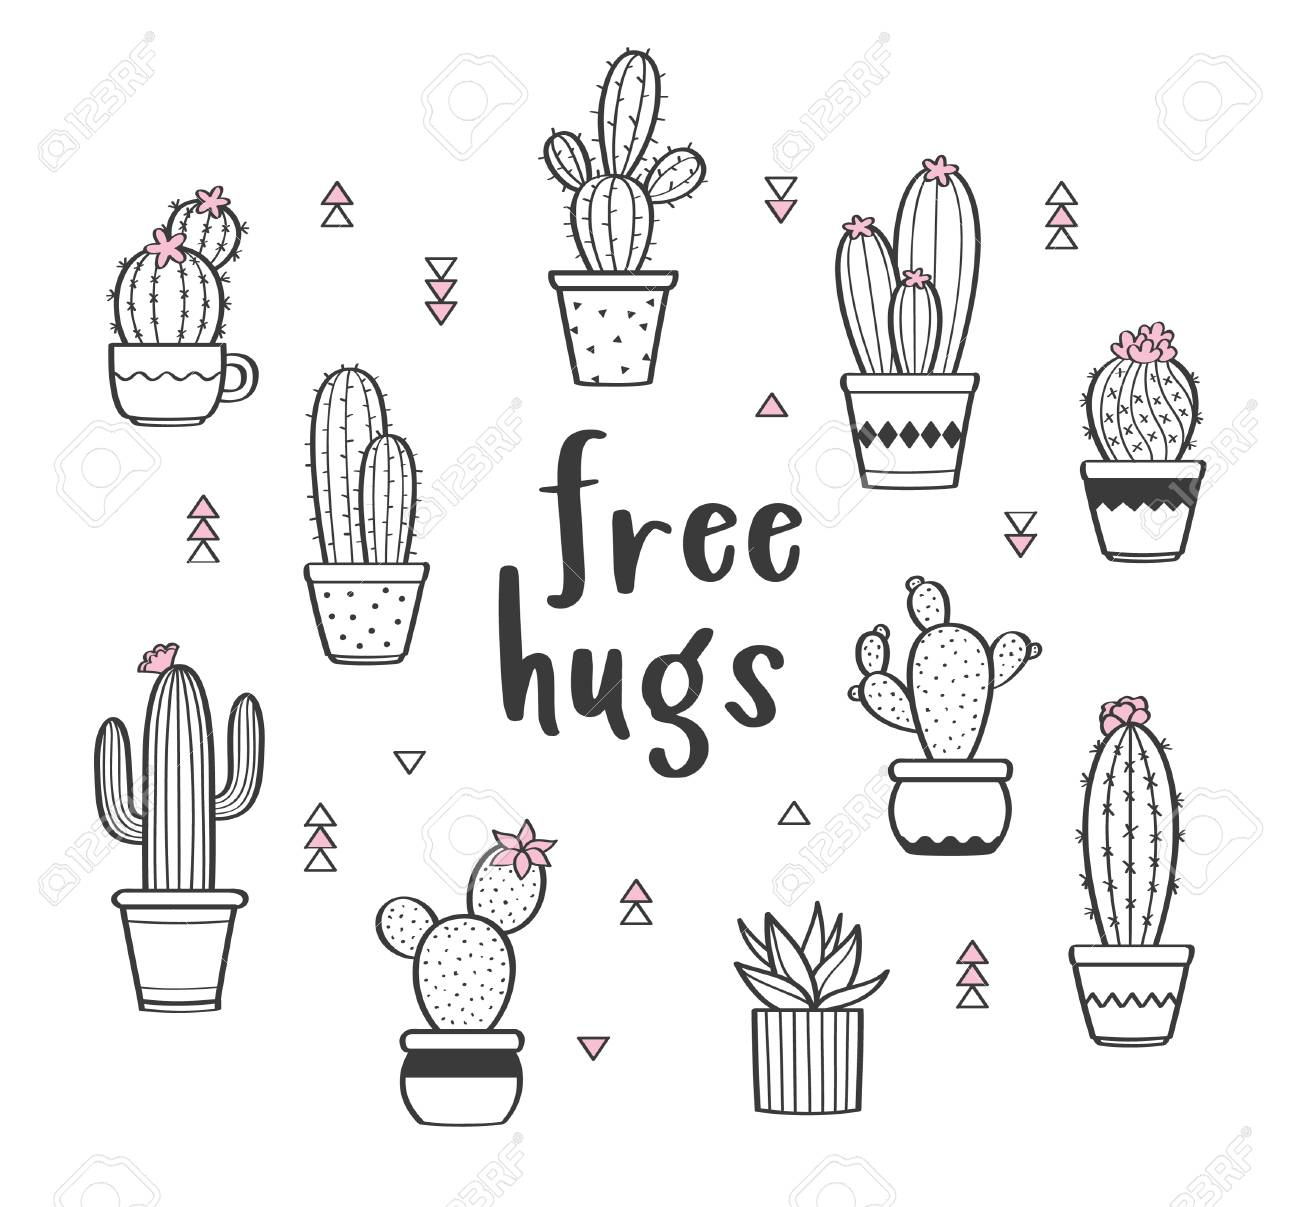 Vector set with various hand drawn outline cactuses in flowerpots. Cute hand drawn cactus print with inspirational quote isolated on white. Free hugs - 105207216